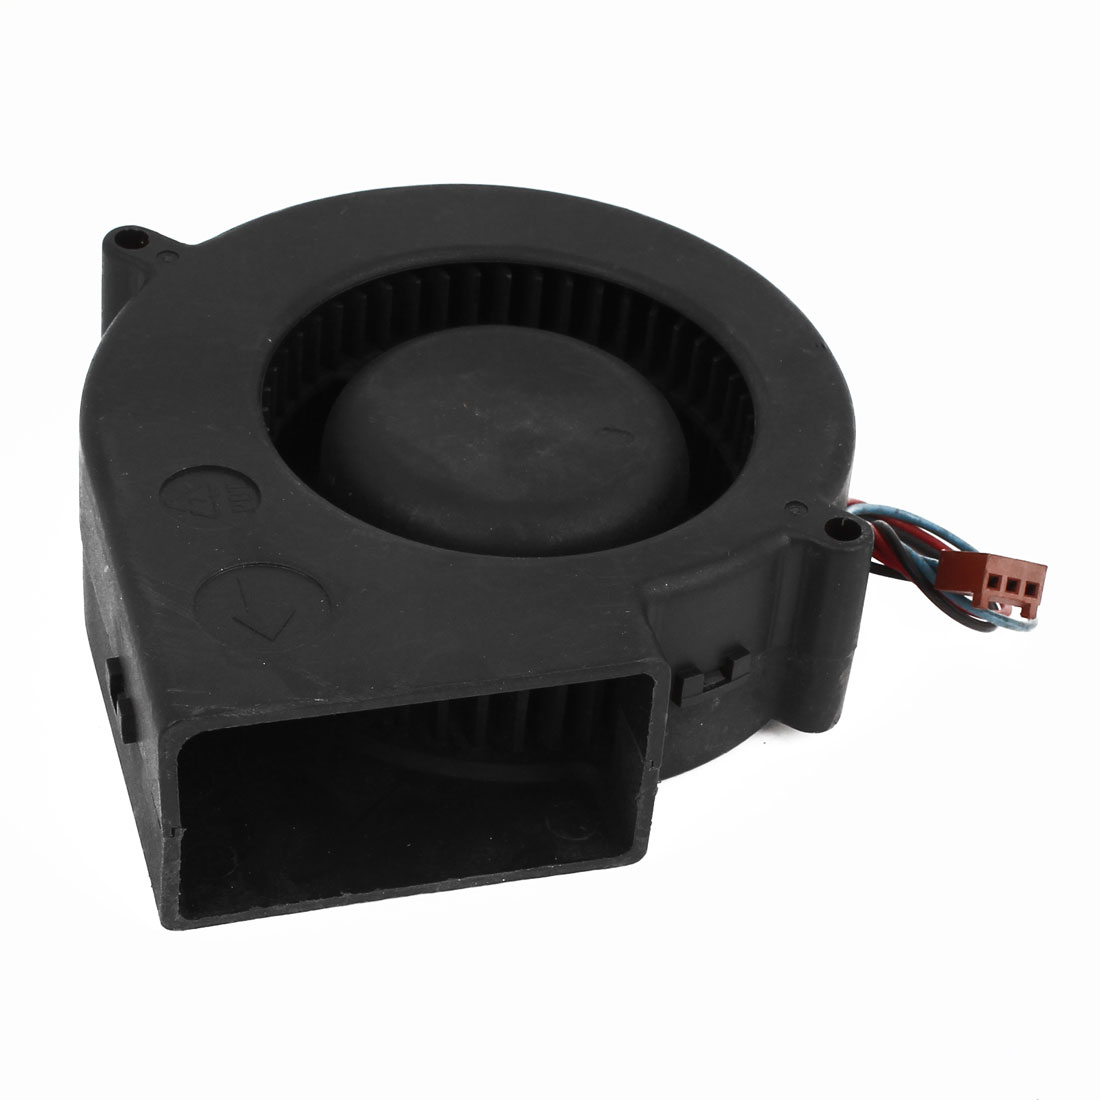 Notebook PC 3 Terminals Connector CPU Cooler Cooling Blower Fan Black DC 220V